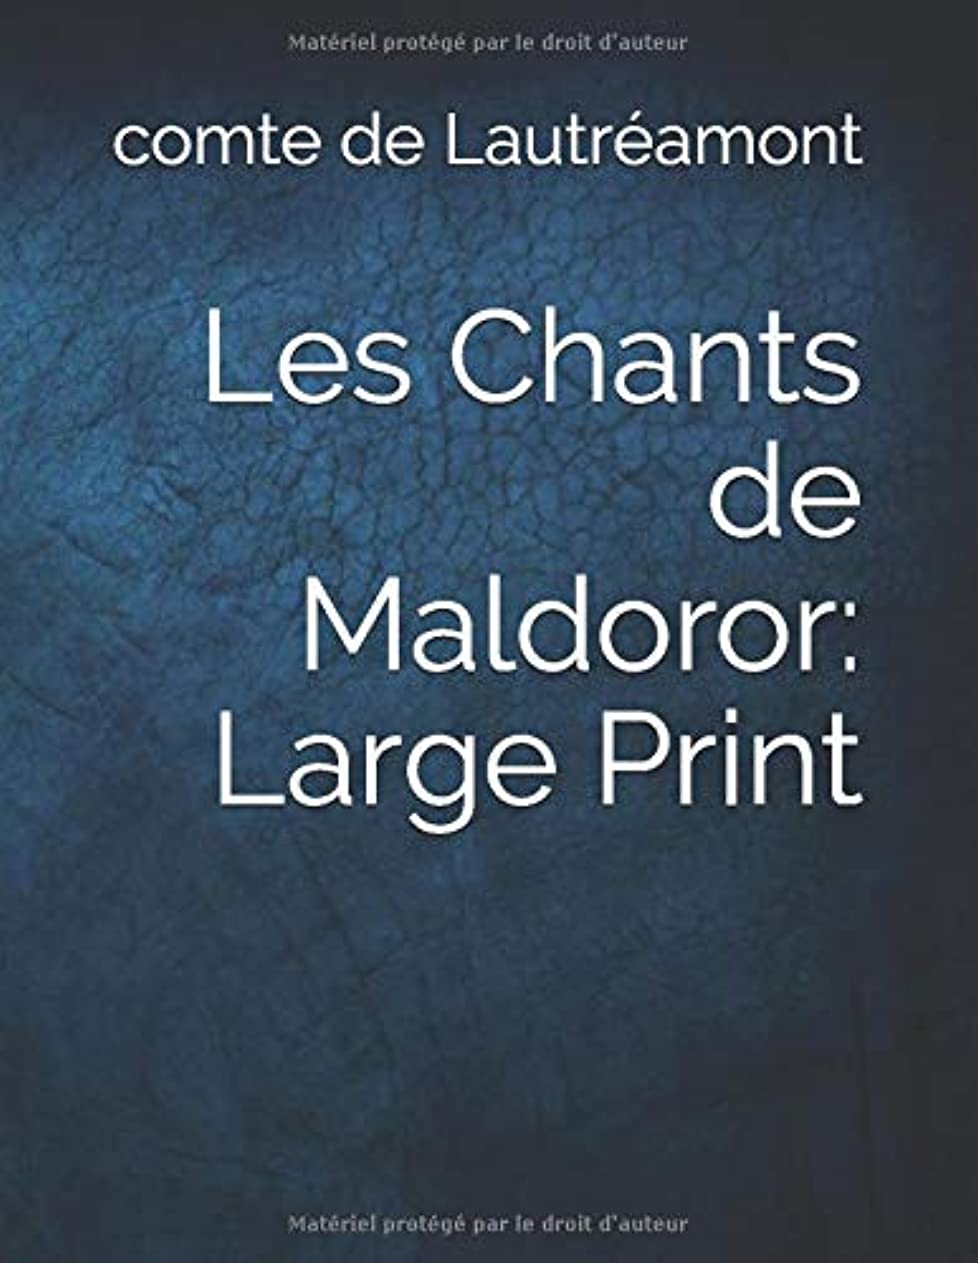 ウィスキー作曲するクラスLes Chants de Maldoror: Large Print